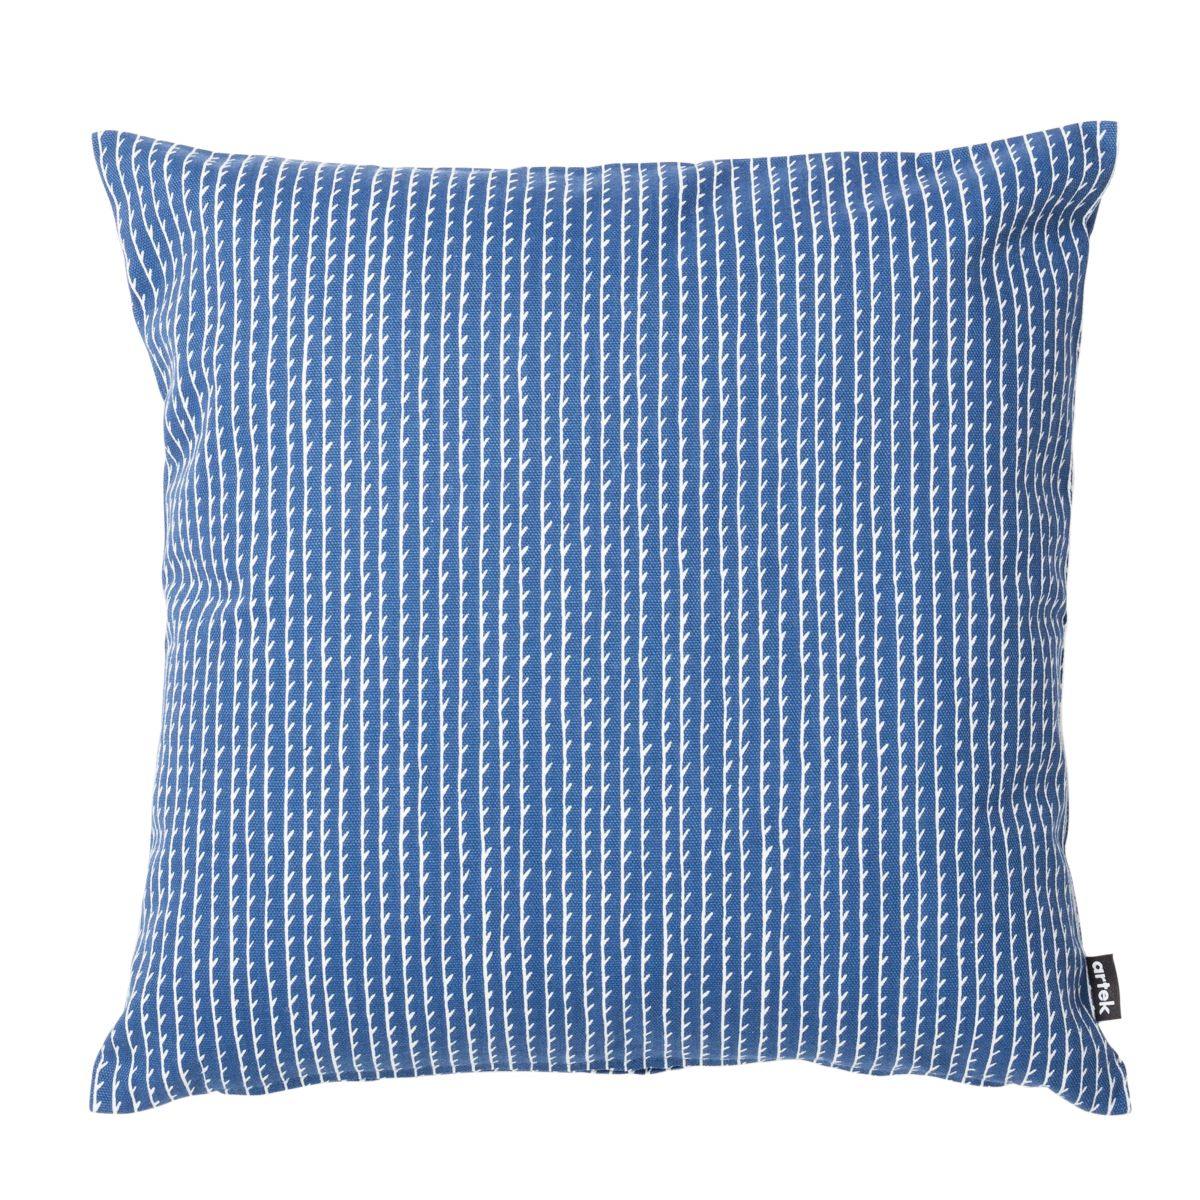 Rivi-Cushion-Cover-Blue-_-White-Large_F_Web-2410977